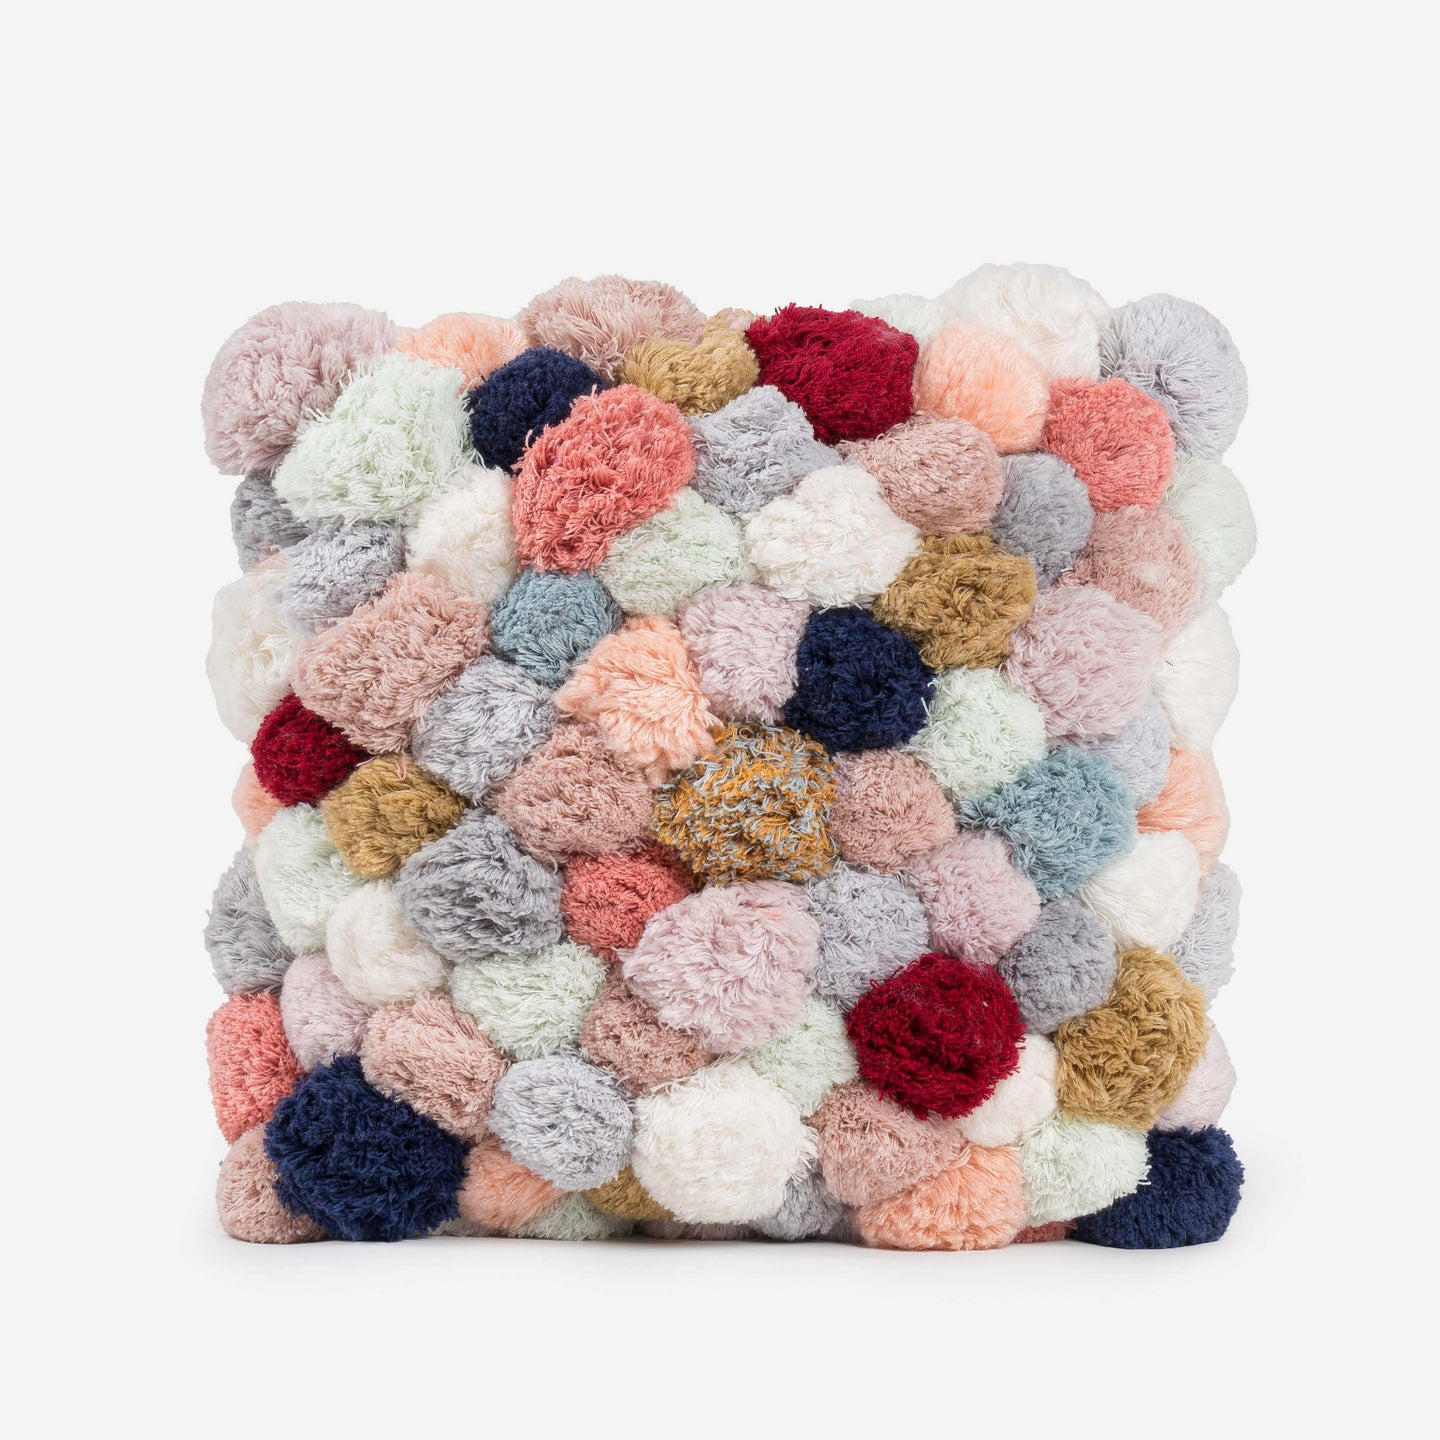 Pom Pillow Verloop Of A Kind Recycled Repurposed Pom Pillow